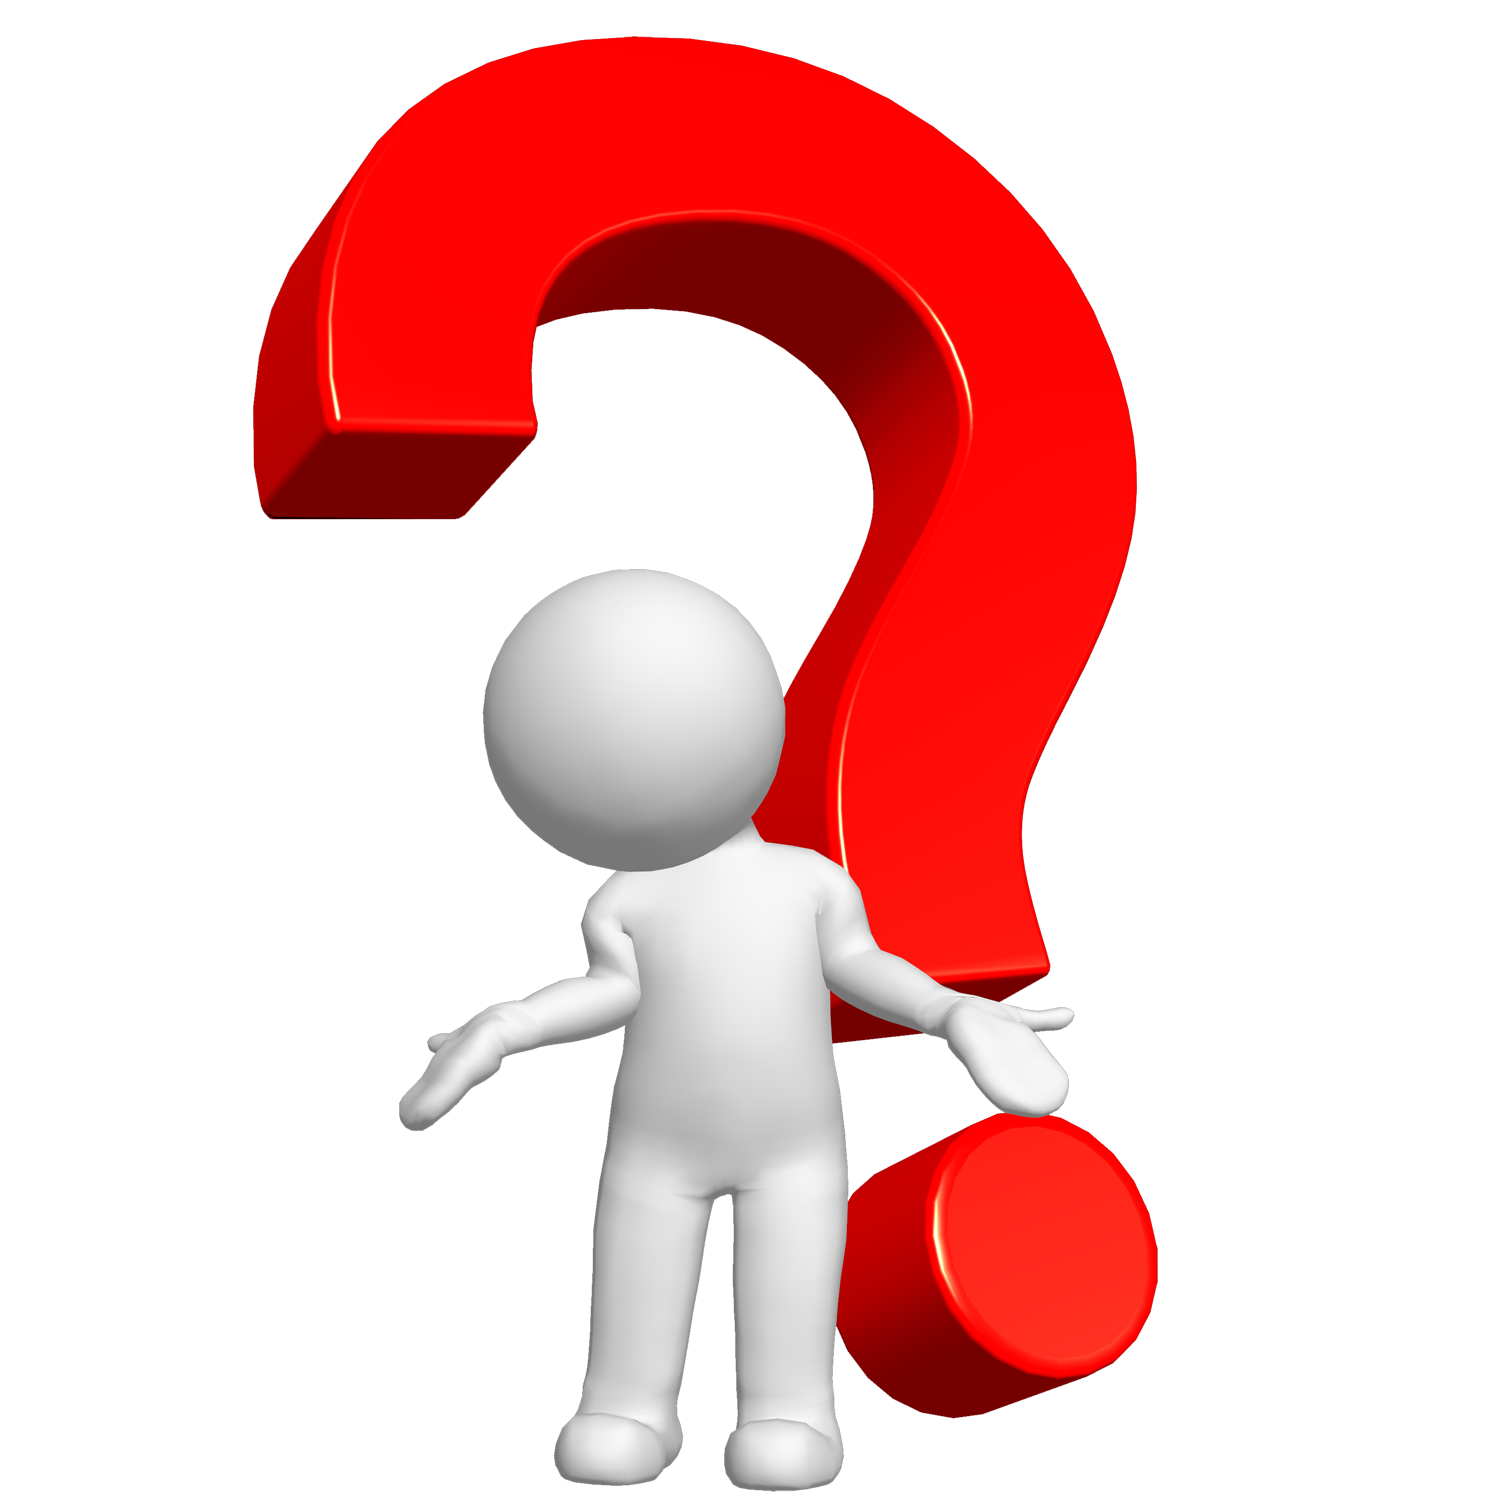 Text Symbol Question Mark Computer Graphics 3D PNG Image